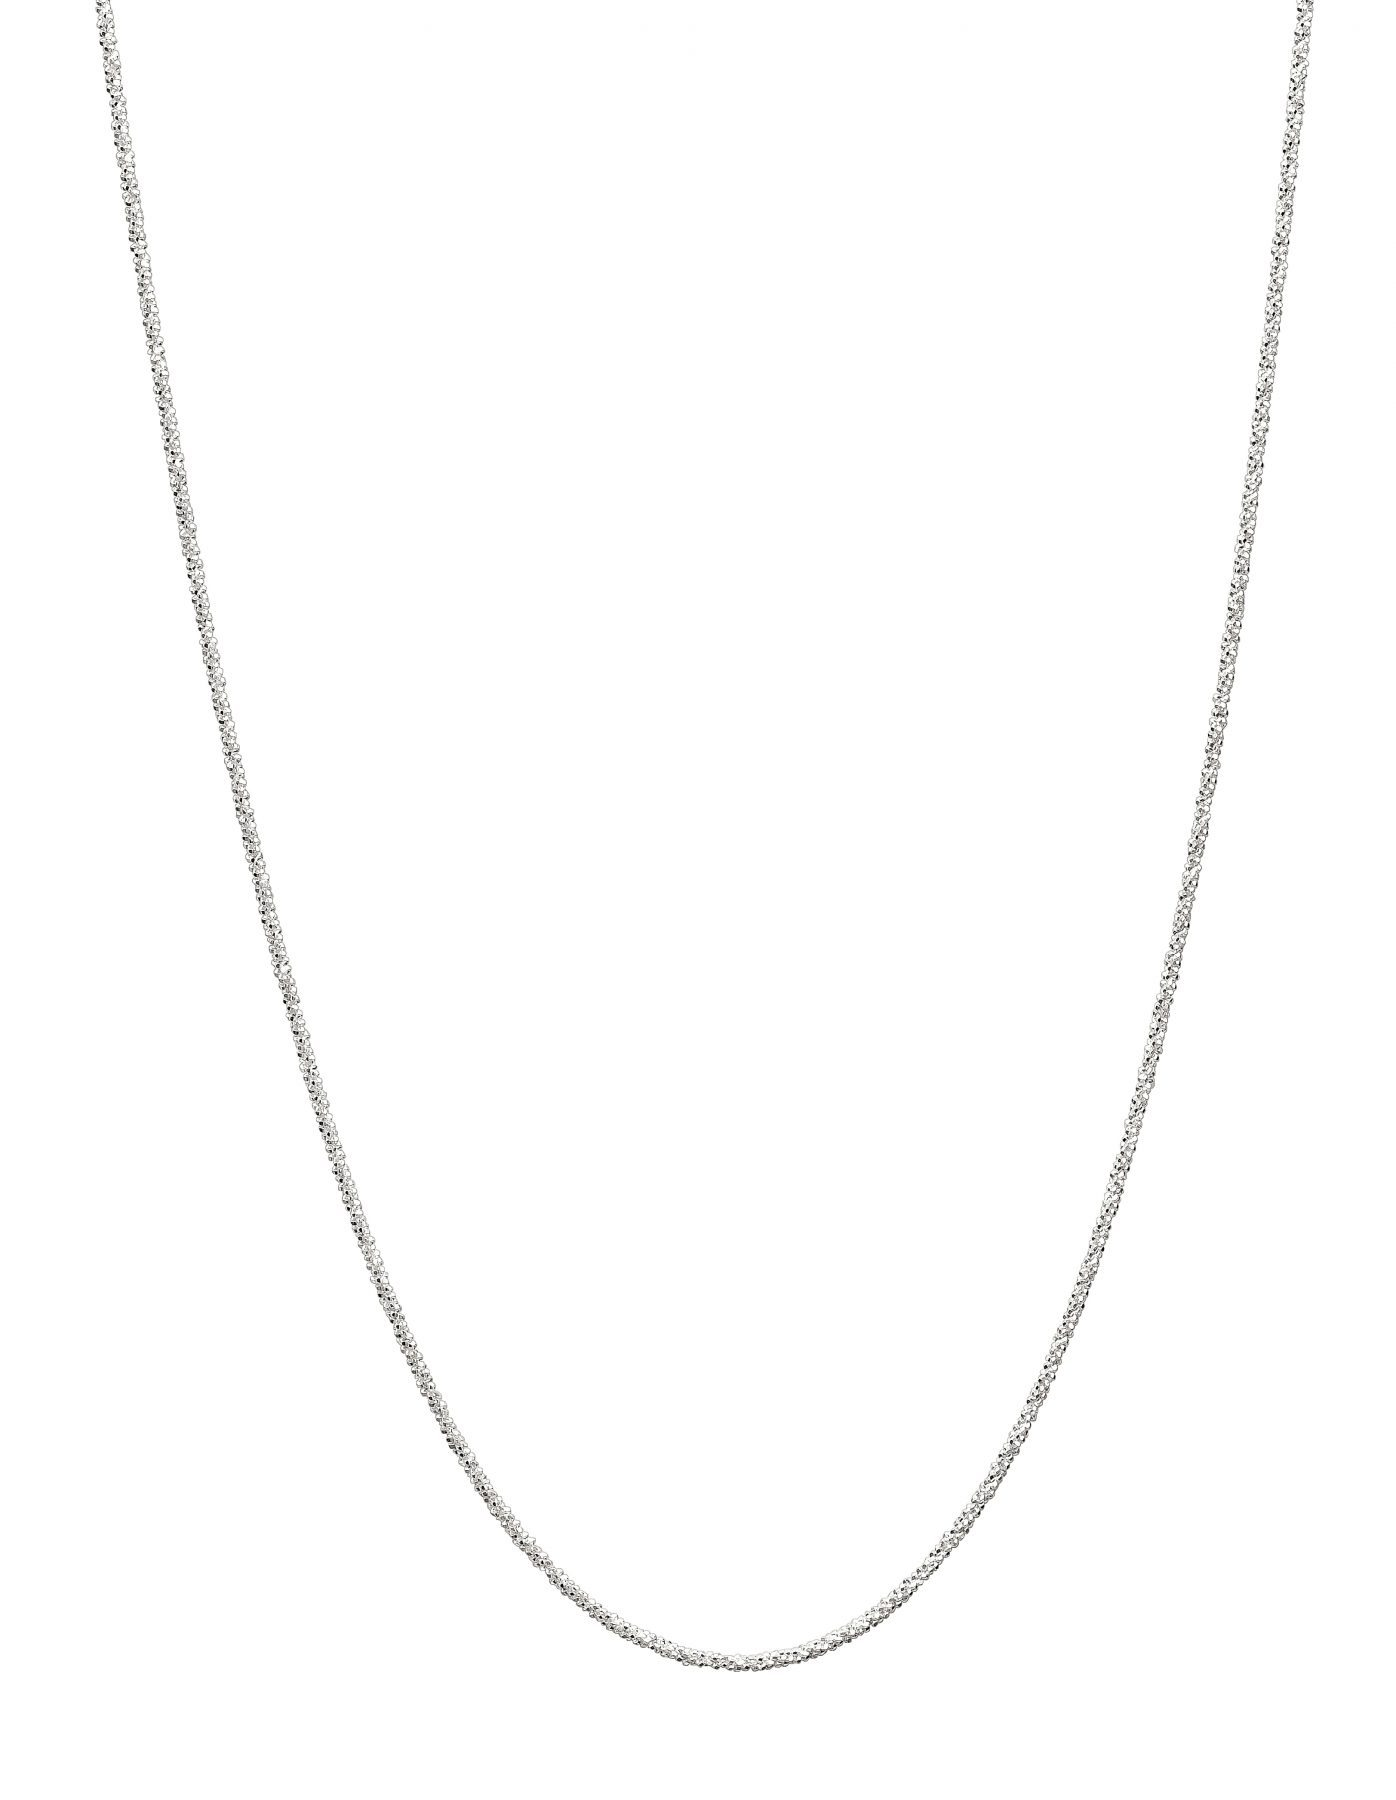 Chamilia Glam Chain- Adjustable Necklace